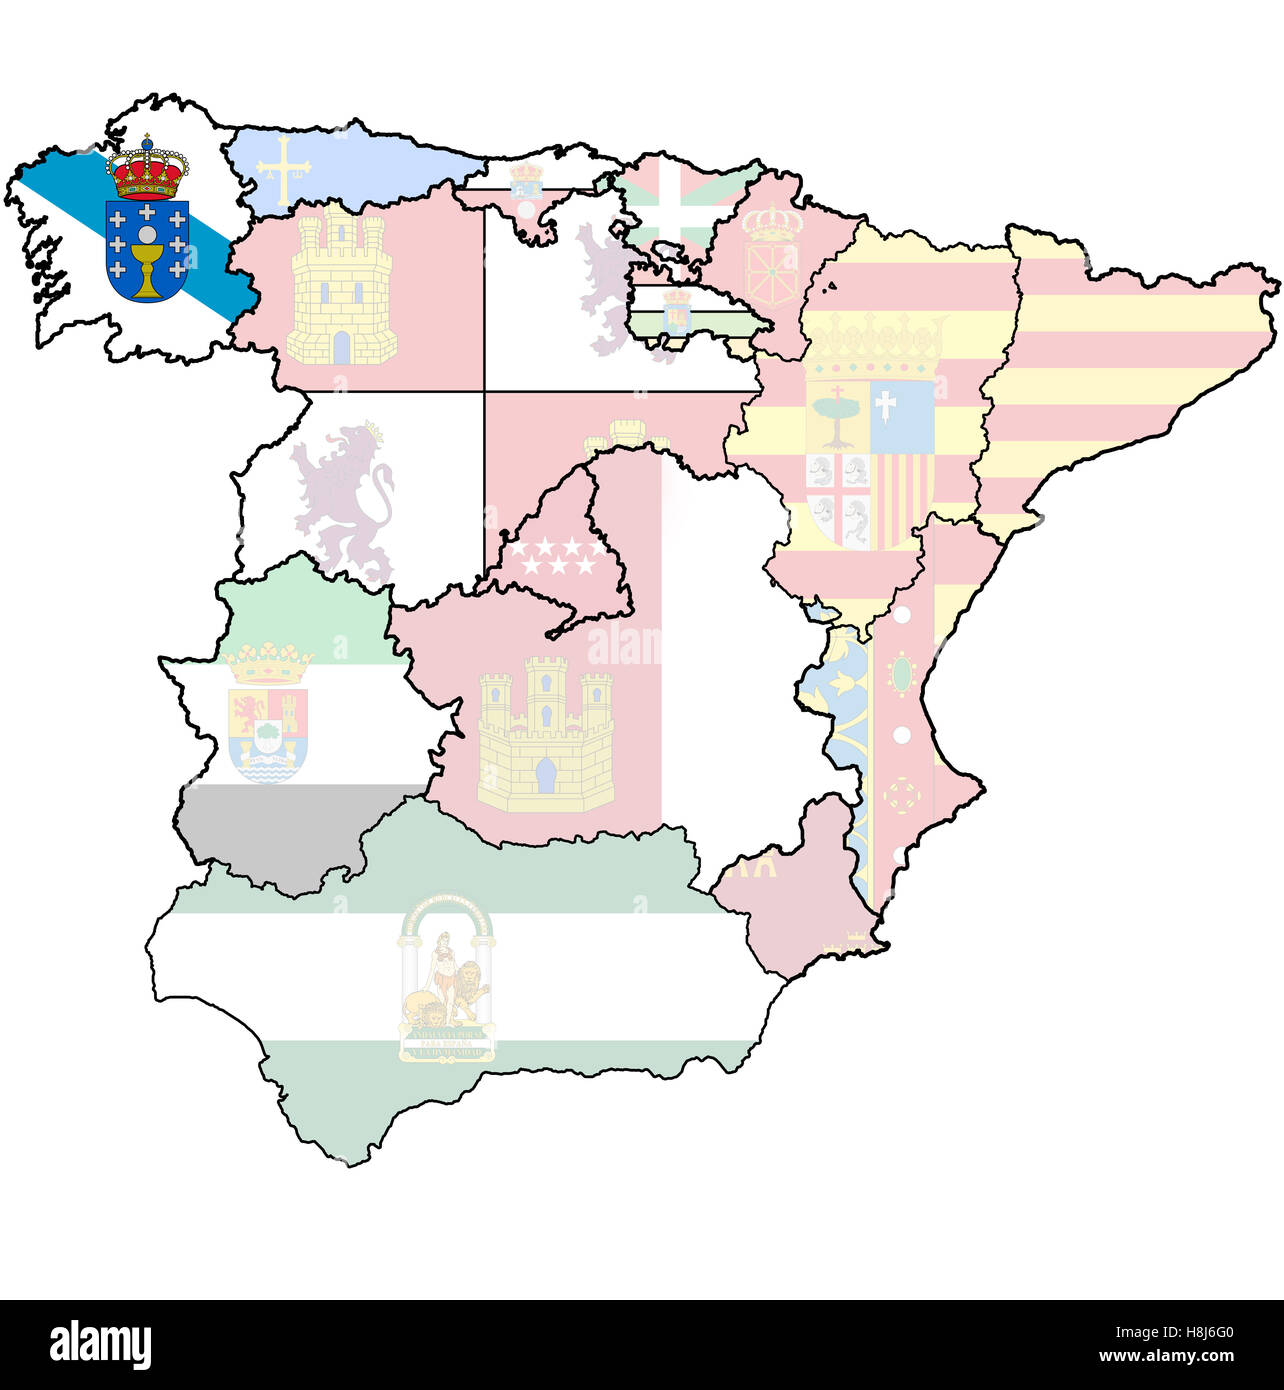 galicia region on administration map of regions of spain with flags